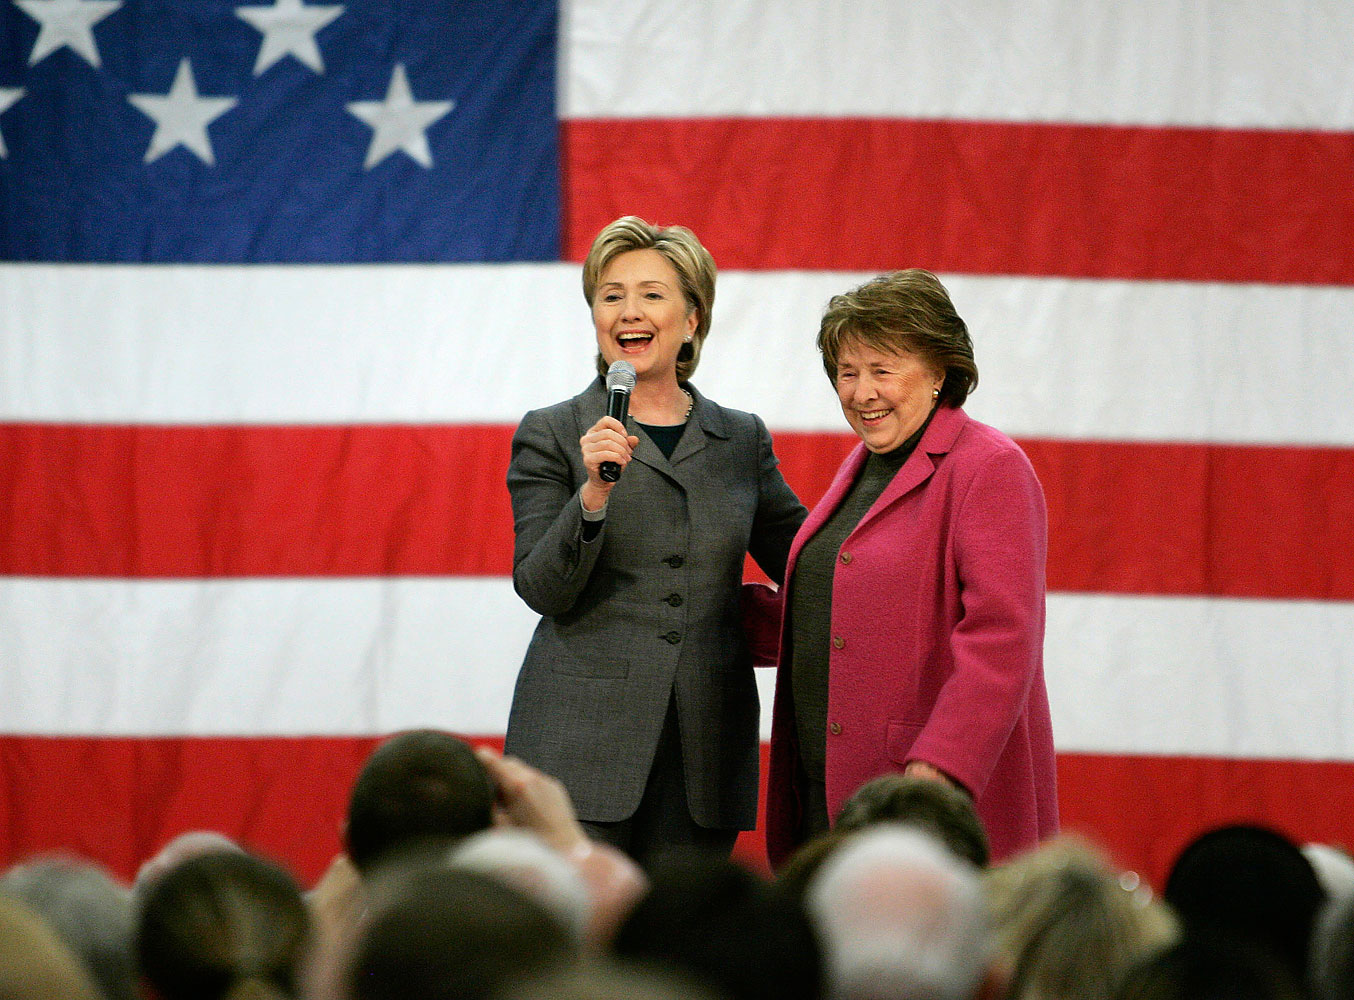 Then U.S. presidential candidate and Senator Hillary Clinton on stage with her mother Dorothy Rodham during a rally in Des Moines, Iowa, on Dec. 7, 2007